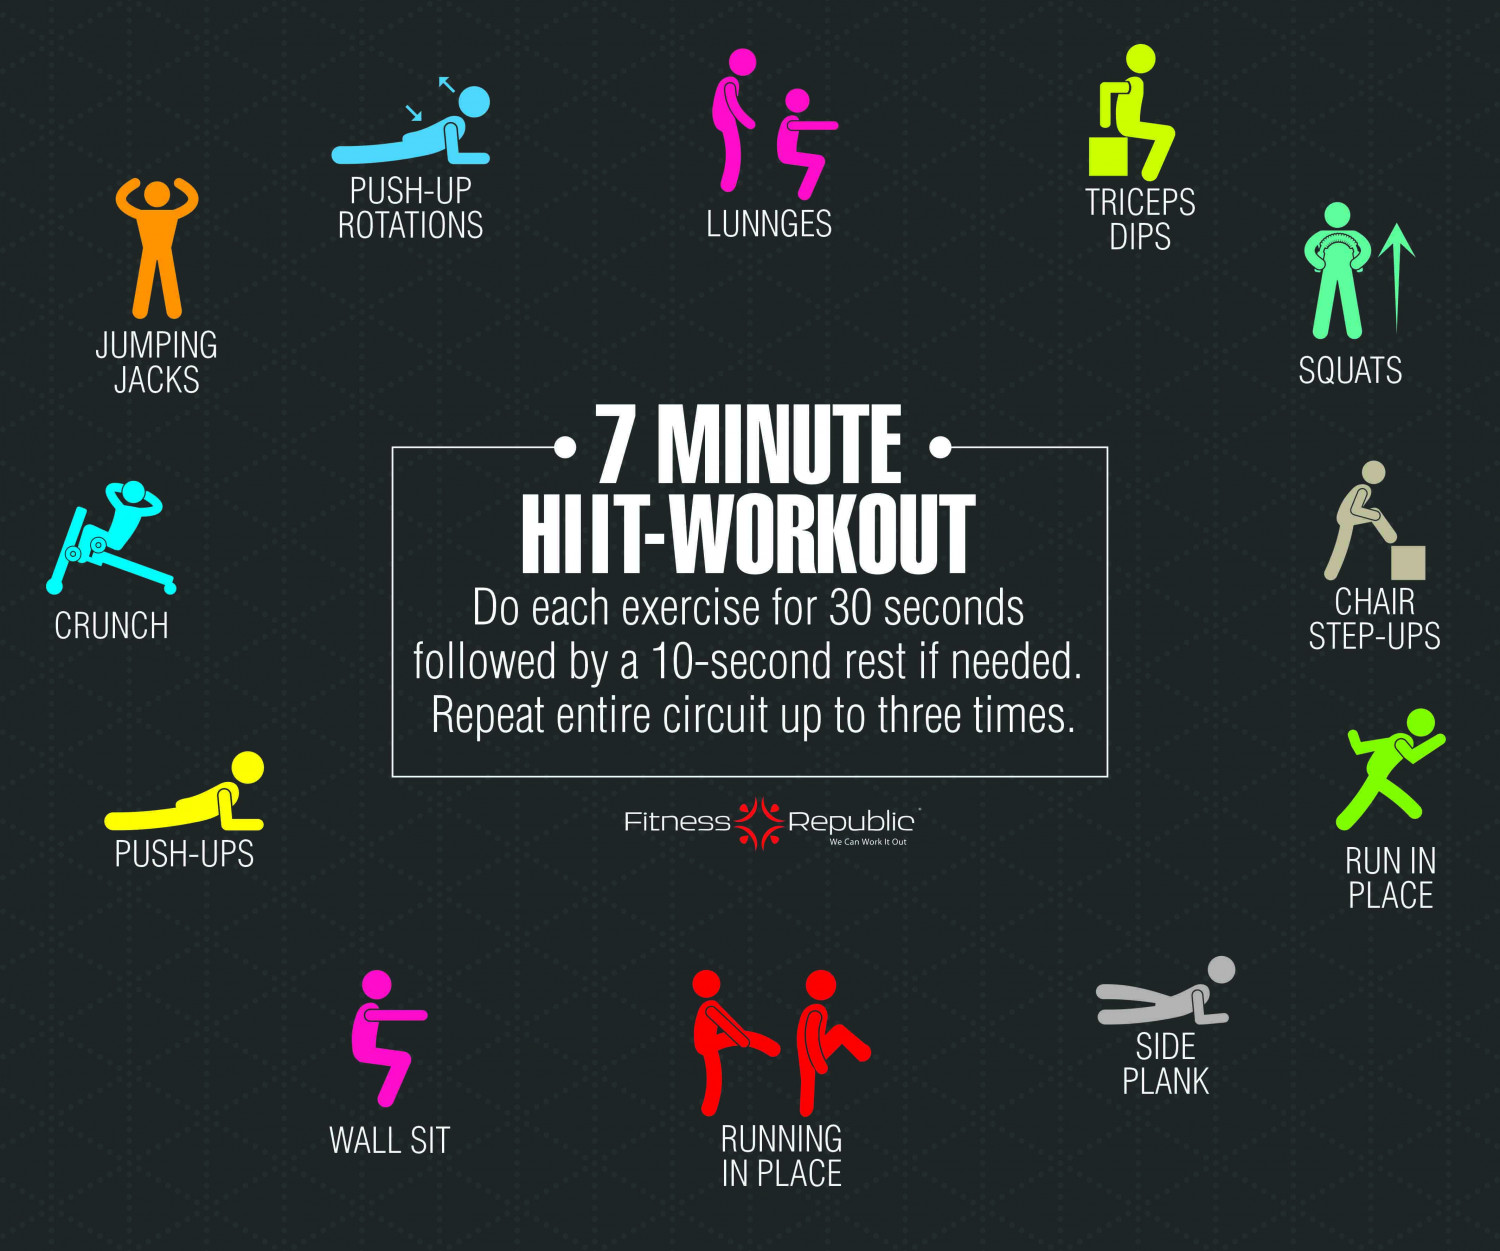 7 Minute HIIT Workout Infographic